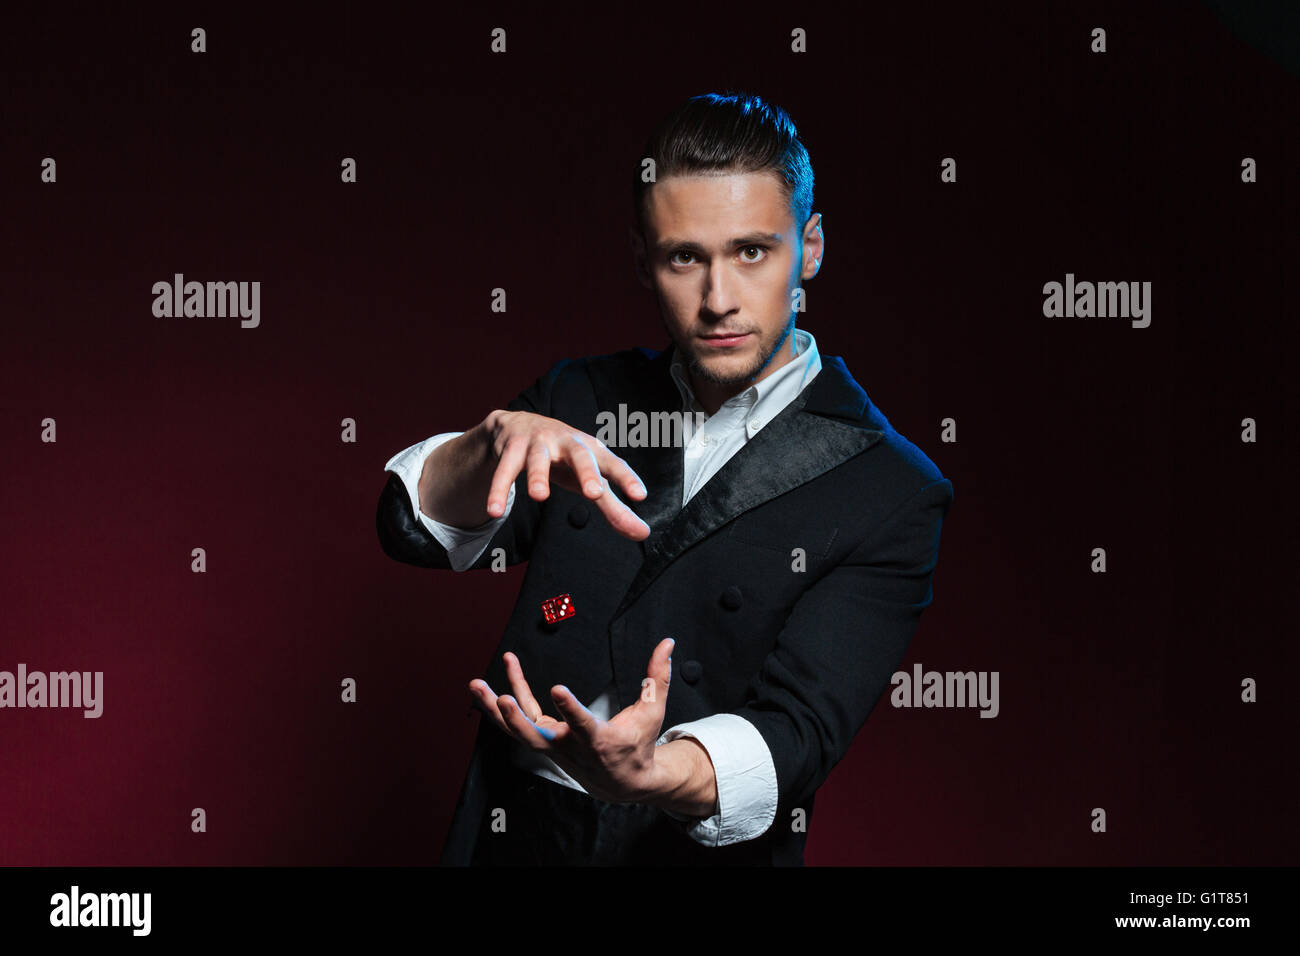 Confident young man magician showing tricks using one flying dice over dark background Stock Photo